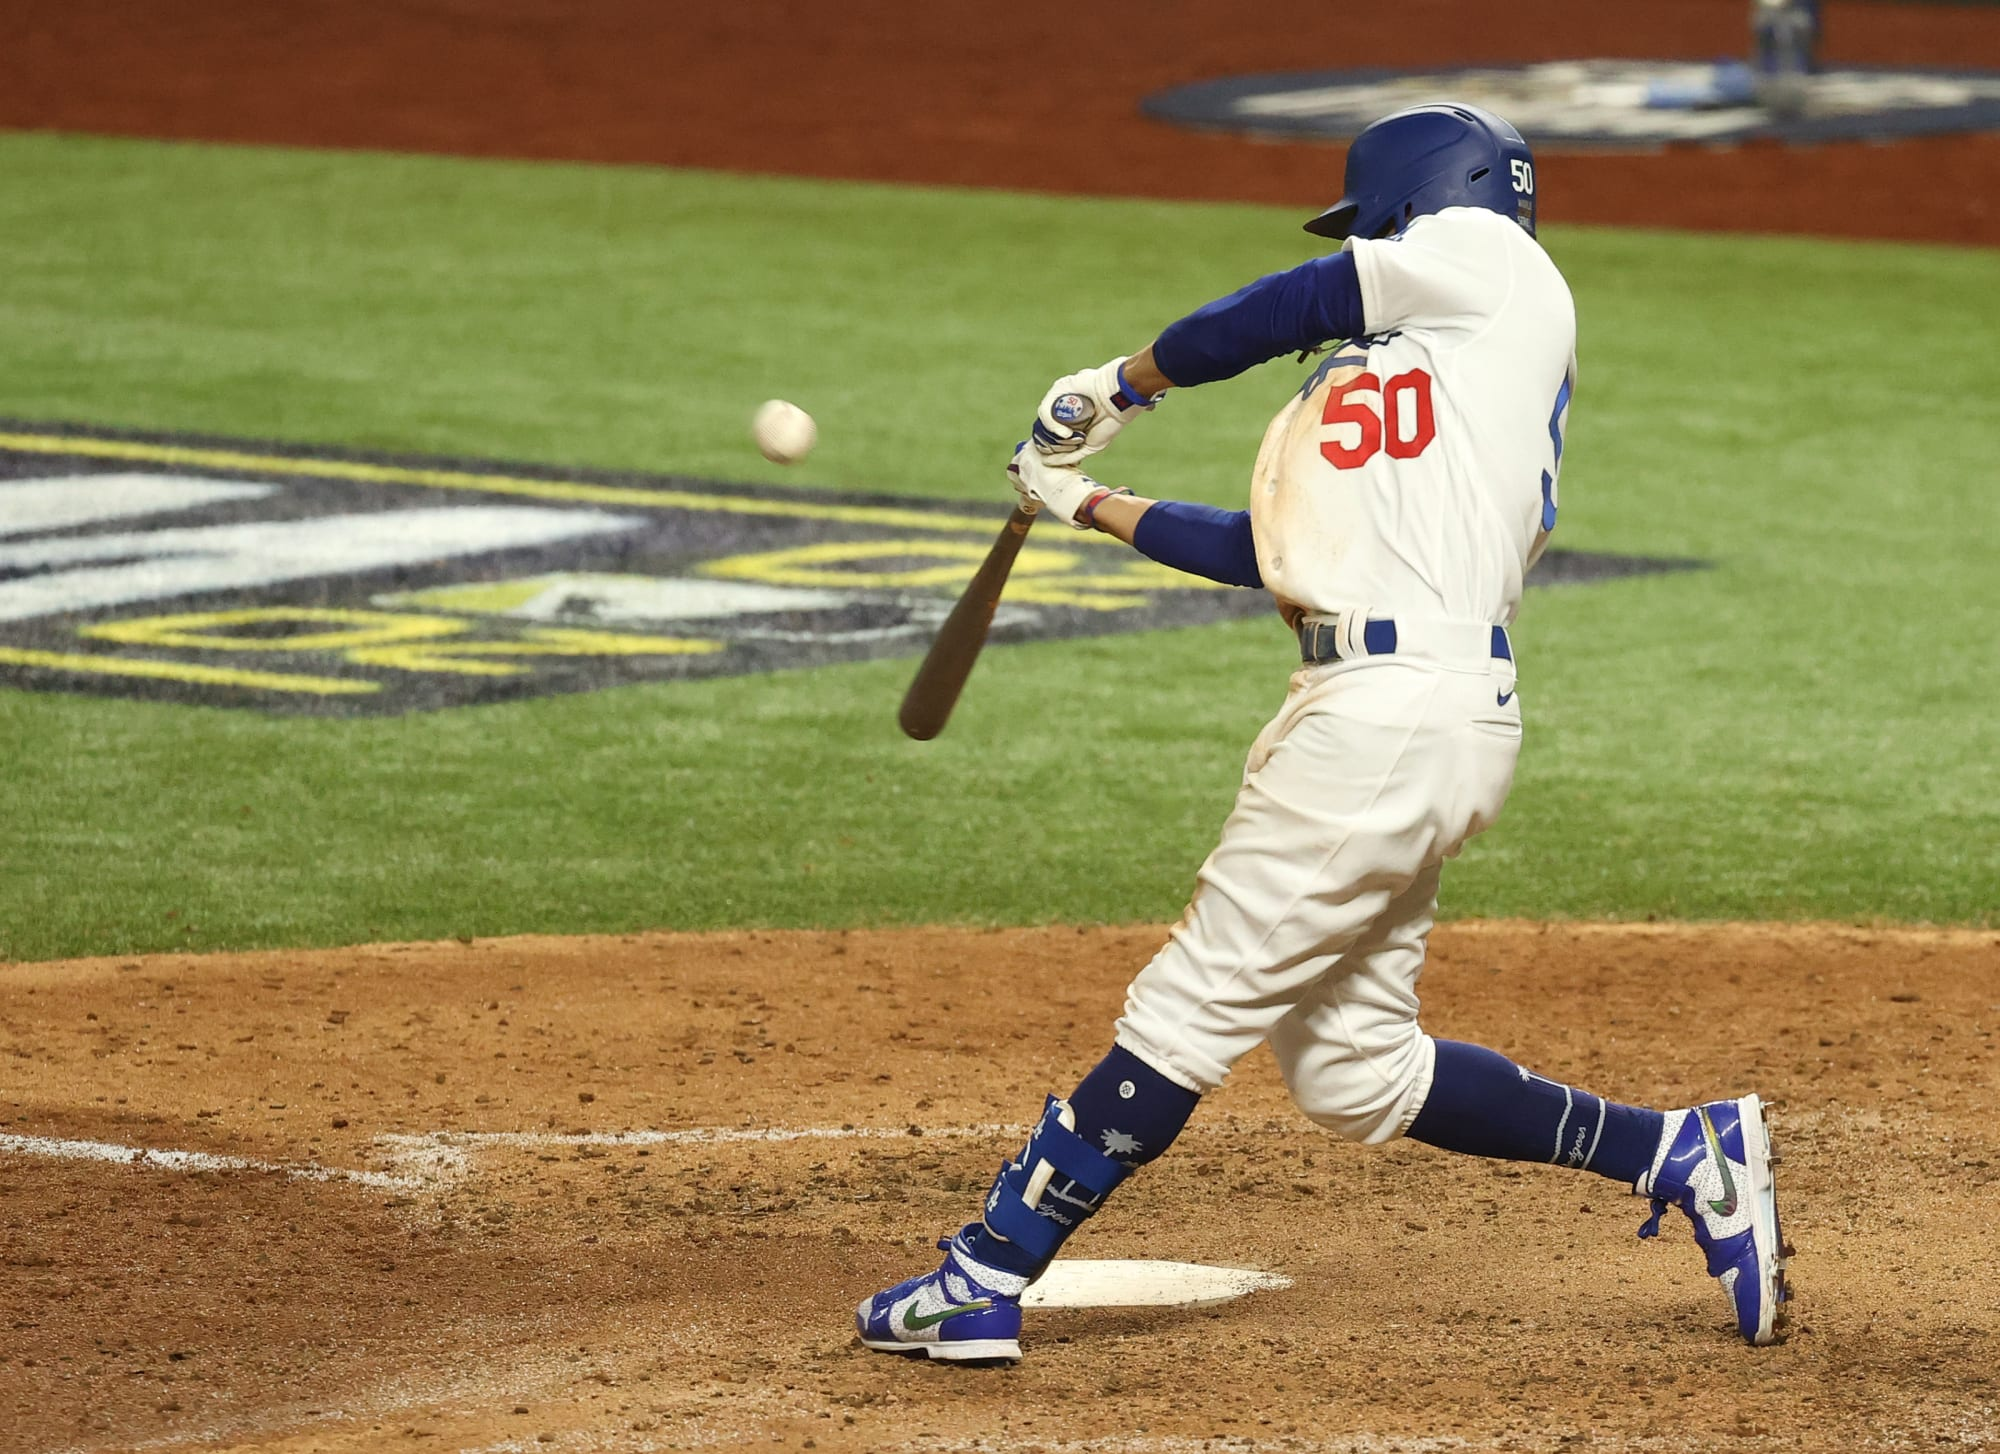 Mookie Betts hits first postseason home run with Dodgers during wild inning (Video)